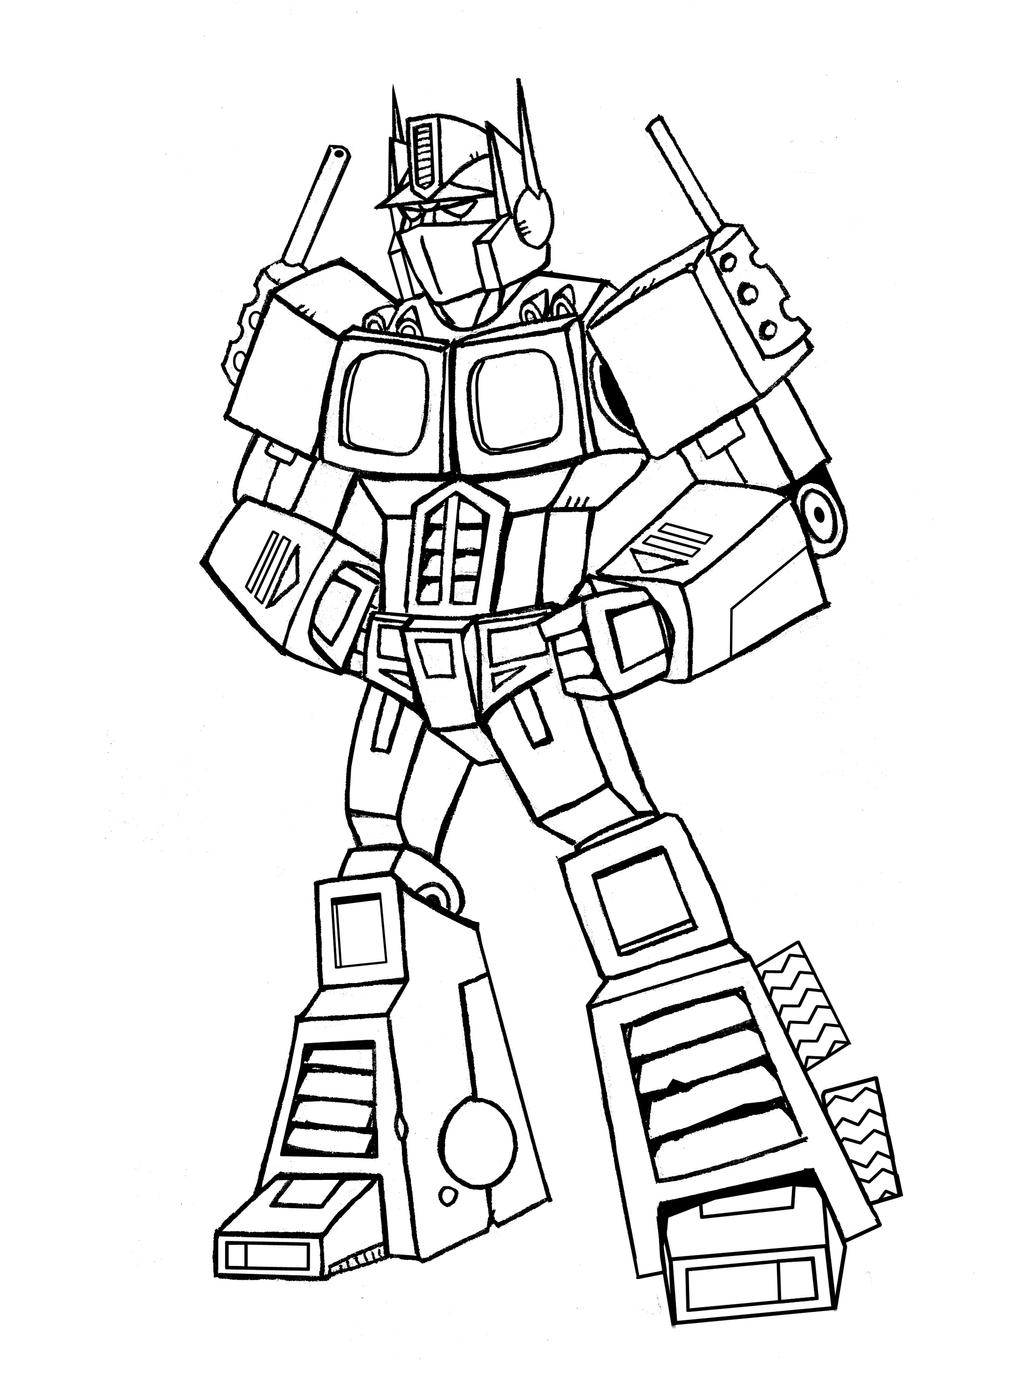 Optimus Prime Lines By Memorypalace On Deviantart Optimus Prime Coloring Pages